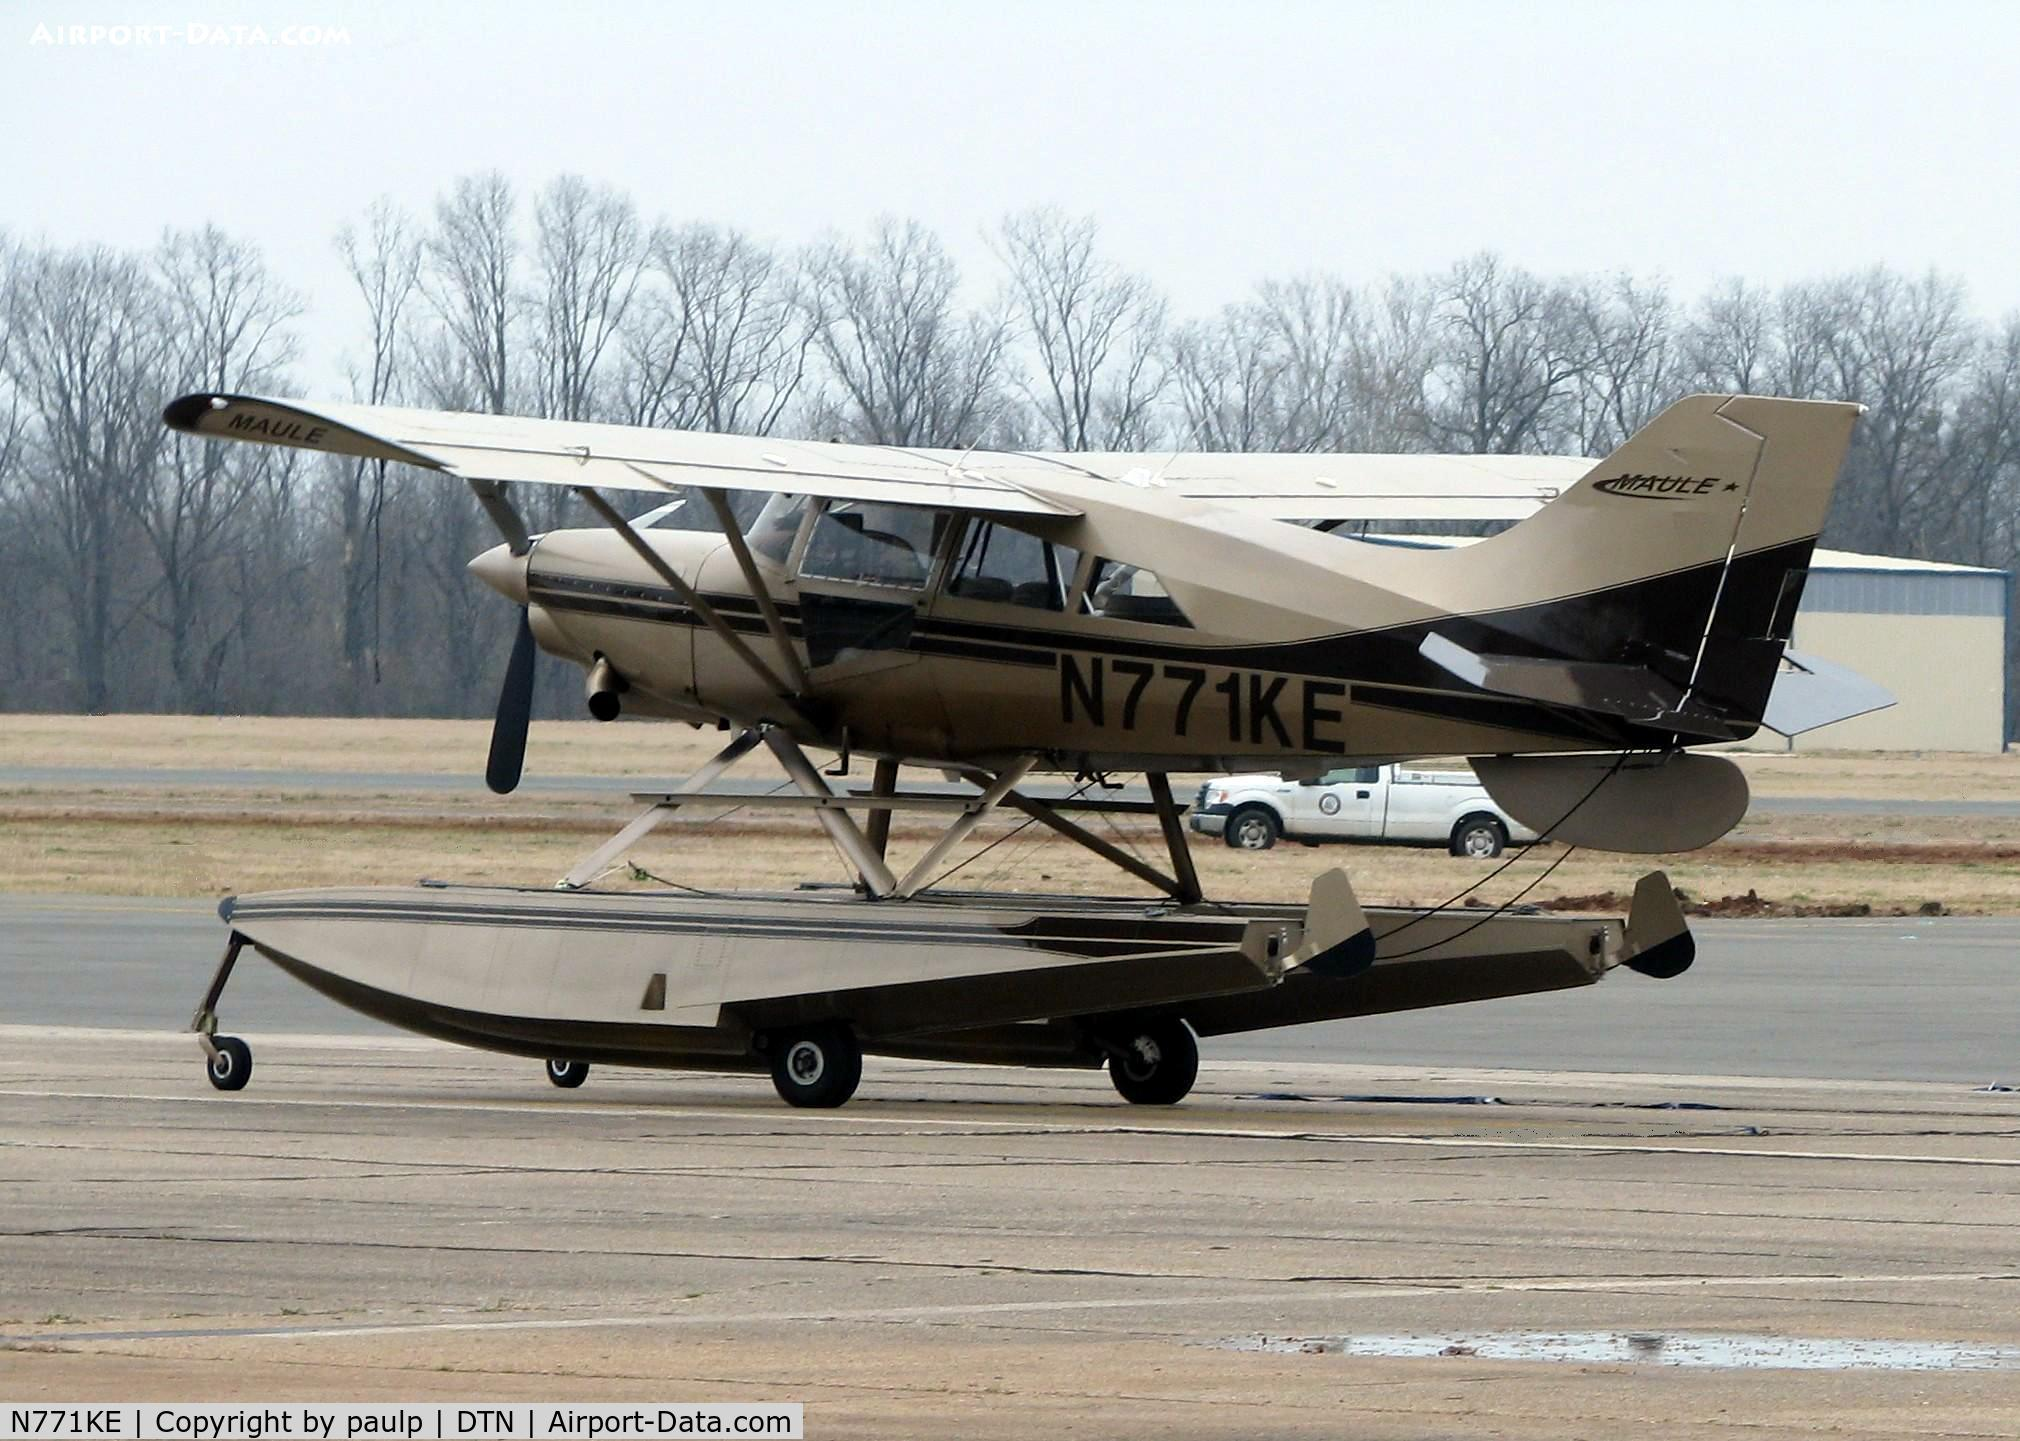 N771KE, 2004 Maule MT-7-420 C/N 51002C, At Downtown Shreveport.